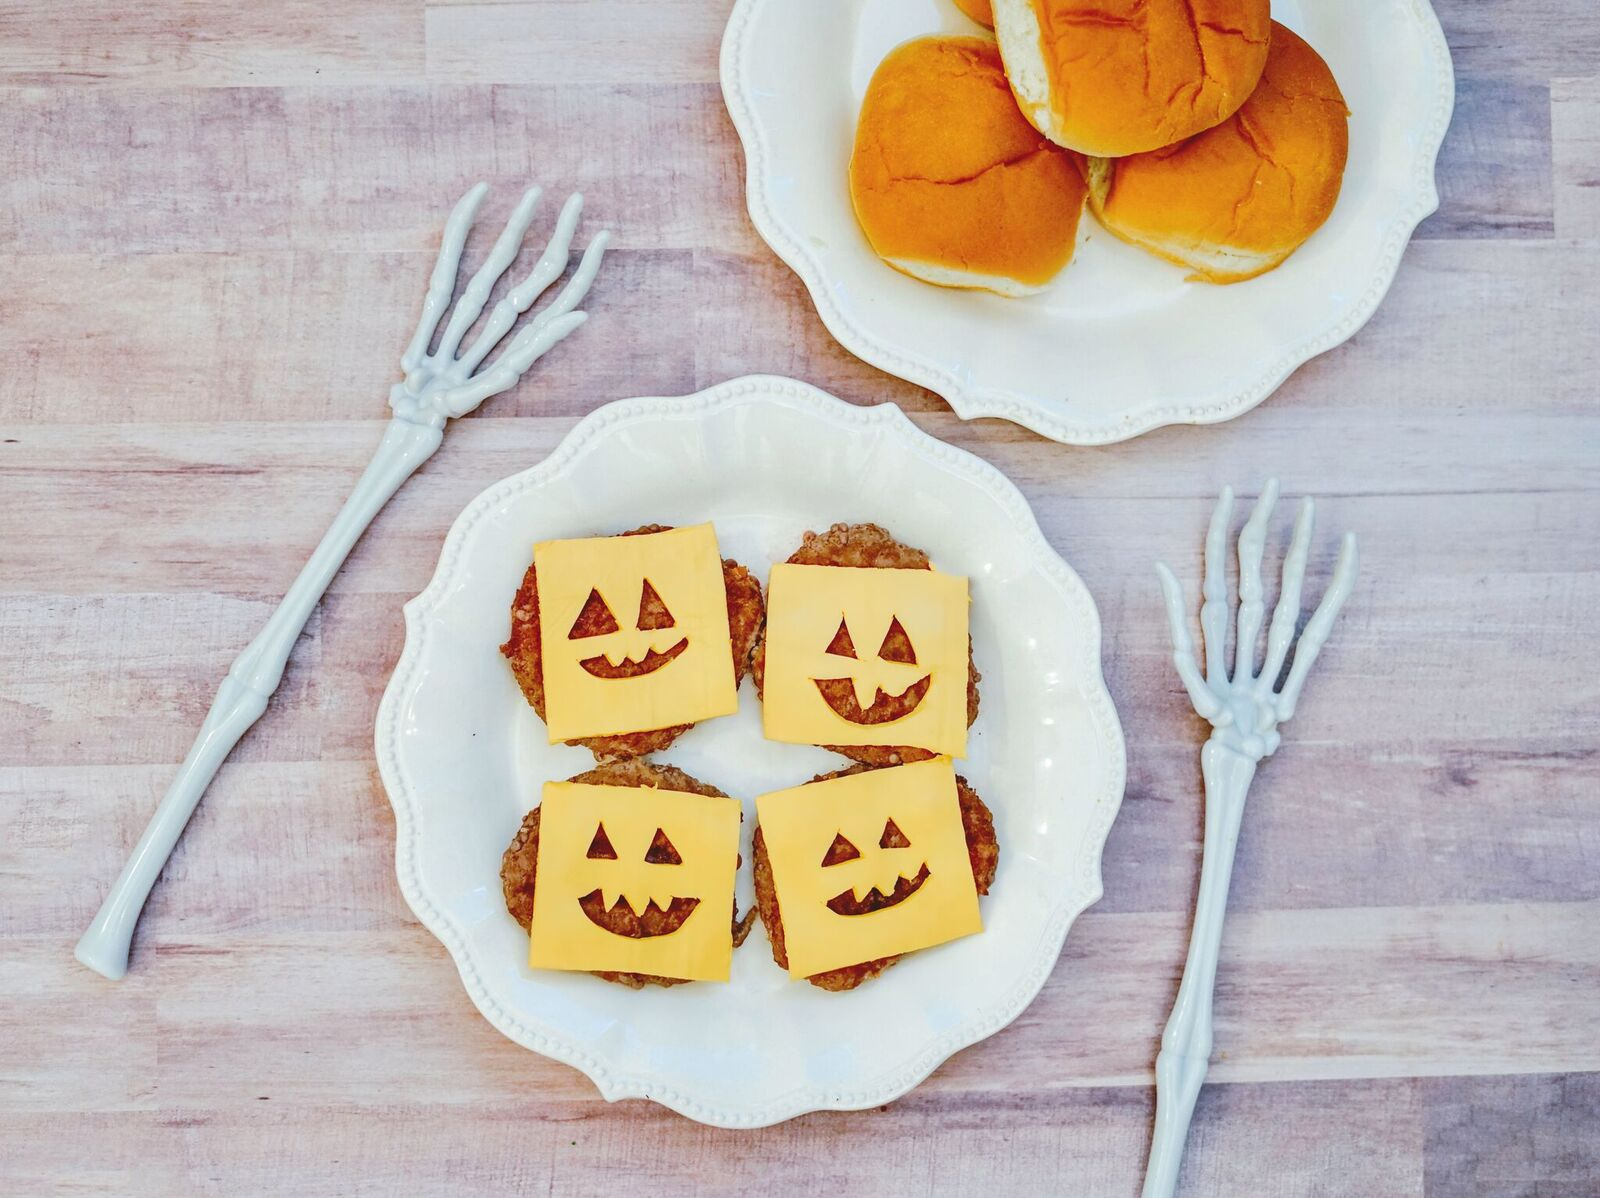 These Jack O'Lantern Cheeseburgers make a fun Halloween dinner idea. They are easy to make and the family will love them.